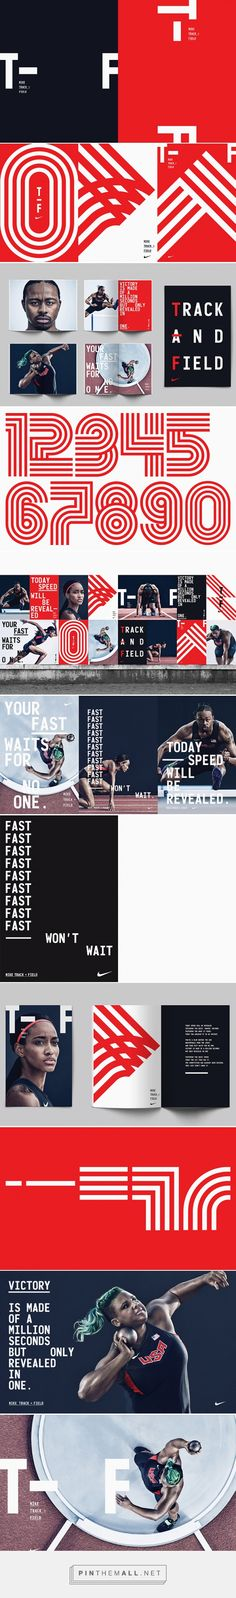 It's Nice That   Build and the Nike brand team creates bold branding for Nike's Track and Field line - created via https://pinthemall.net